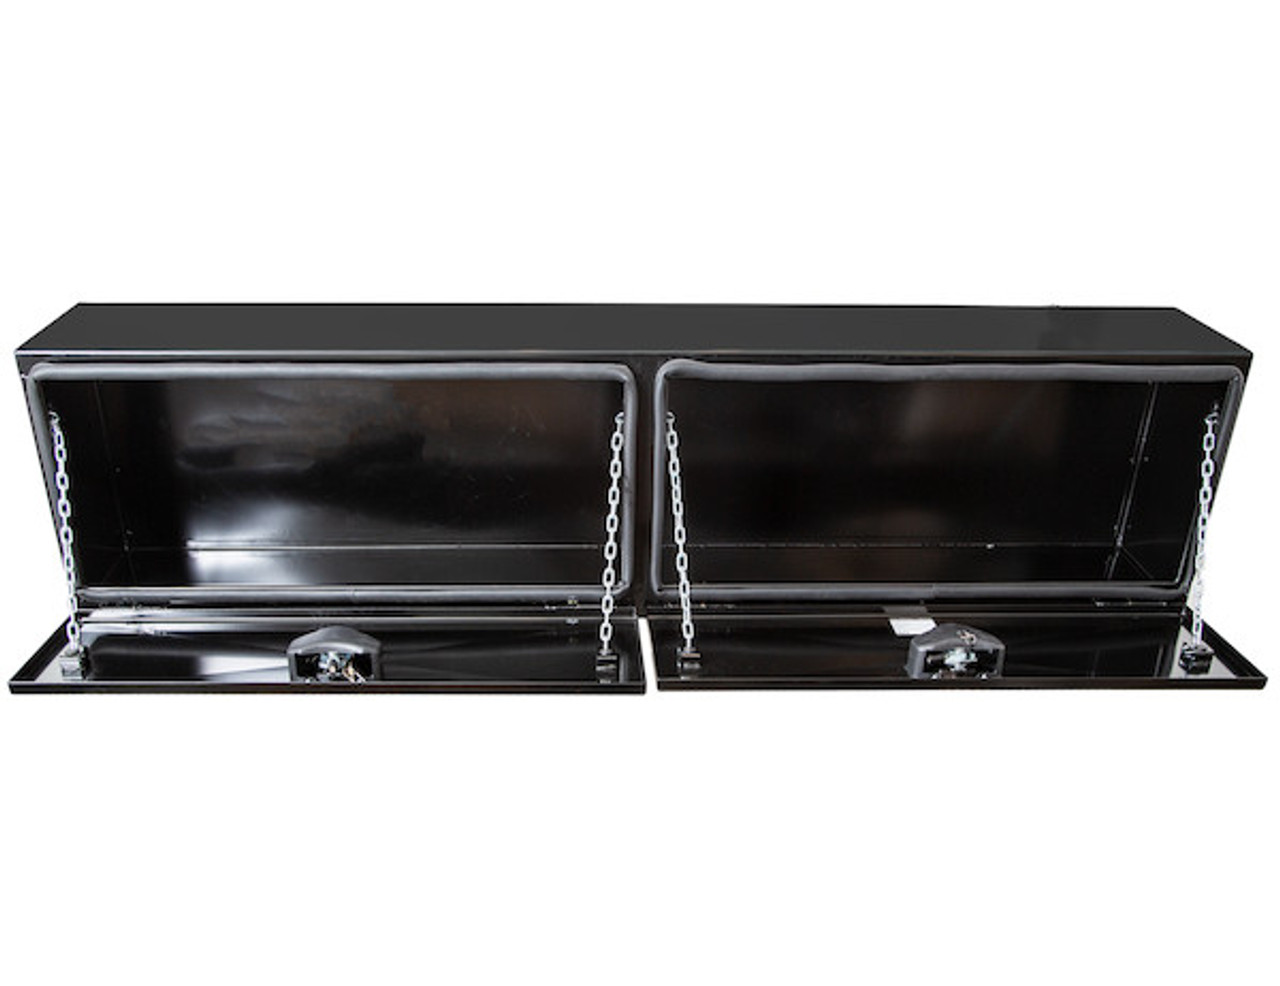 "1742336 BUYERS PRODUCTS XD BLACK STEEL UNDERBODY HEAVY DUTY TRUCK TOOLBOX 18""Hx18""Dx96""W PICTURE # 4"